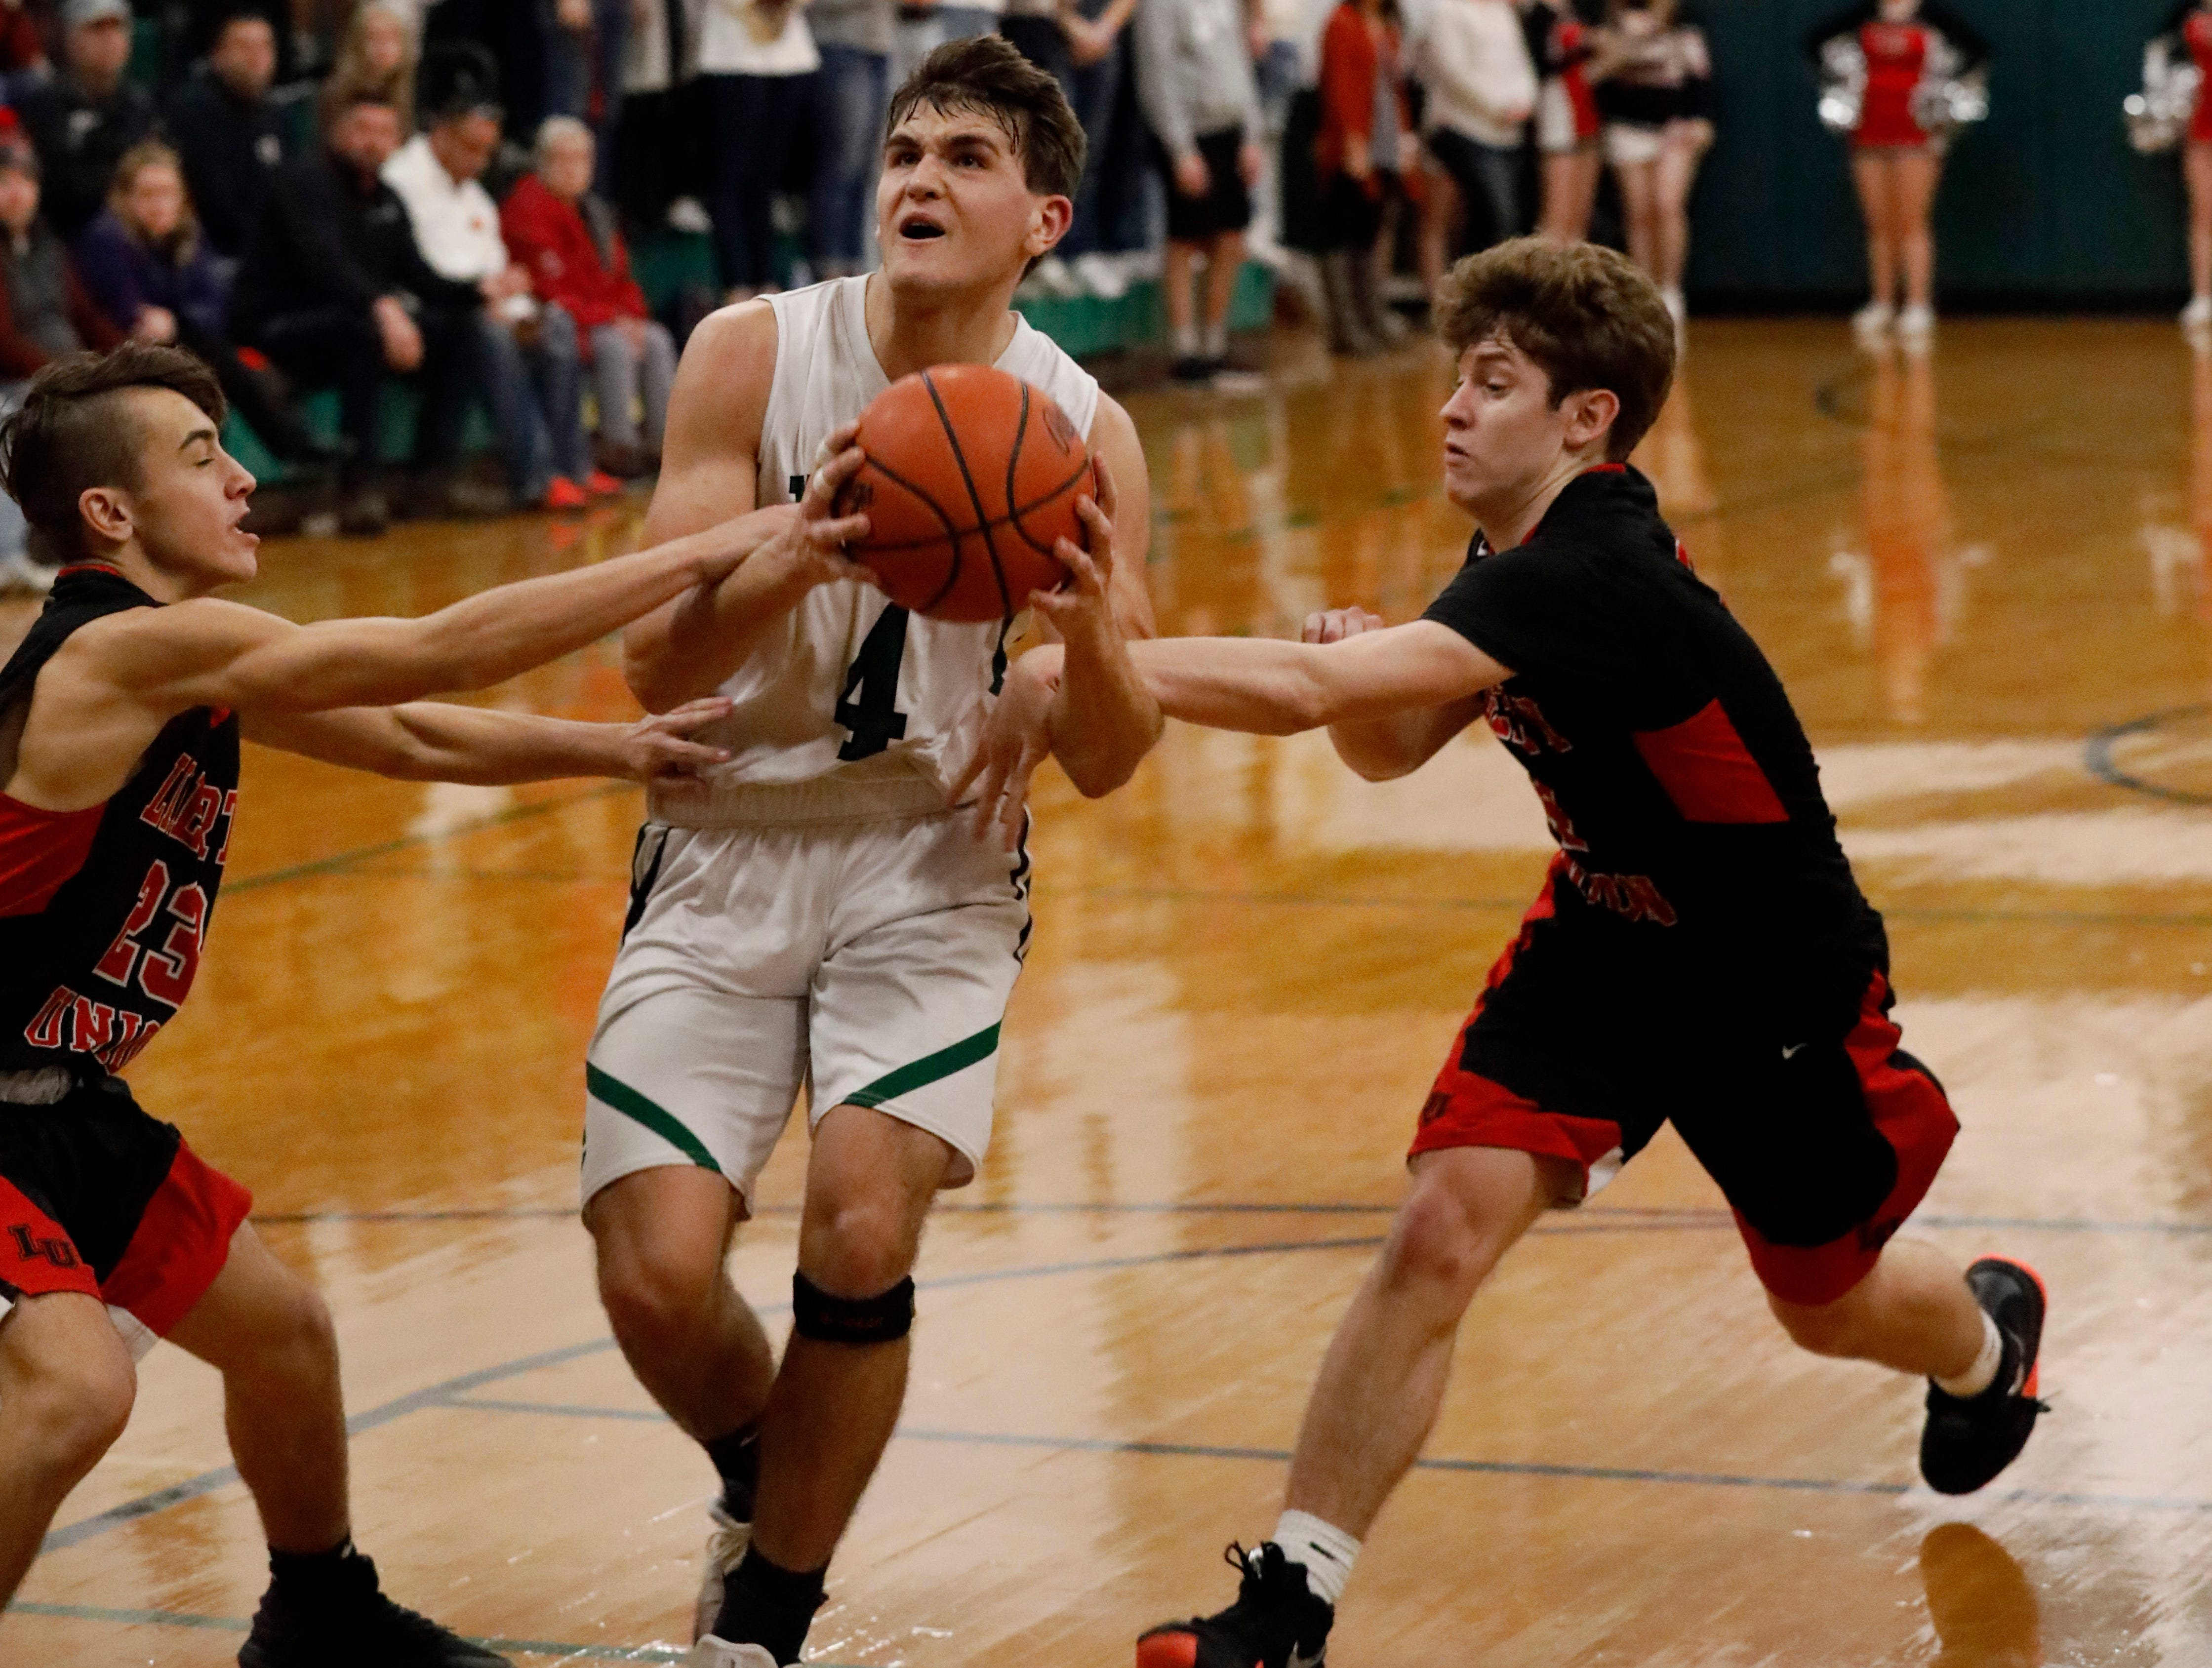 Liberty Union defeated Fisher Catholic 72-65 Thursday night, Jan. 10, 2019, at Fisher Catholic High School in Lancaster.